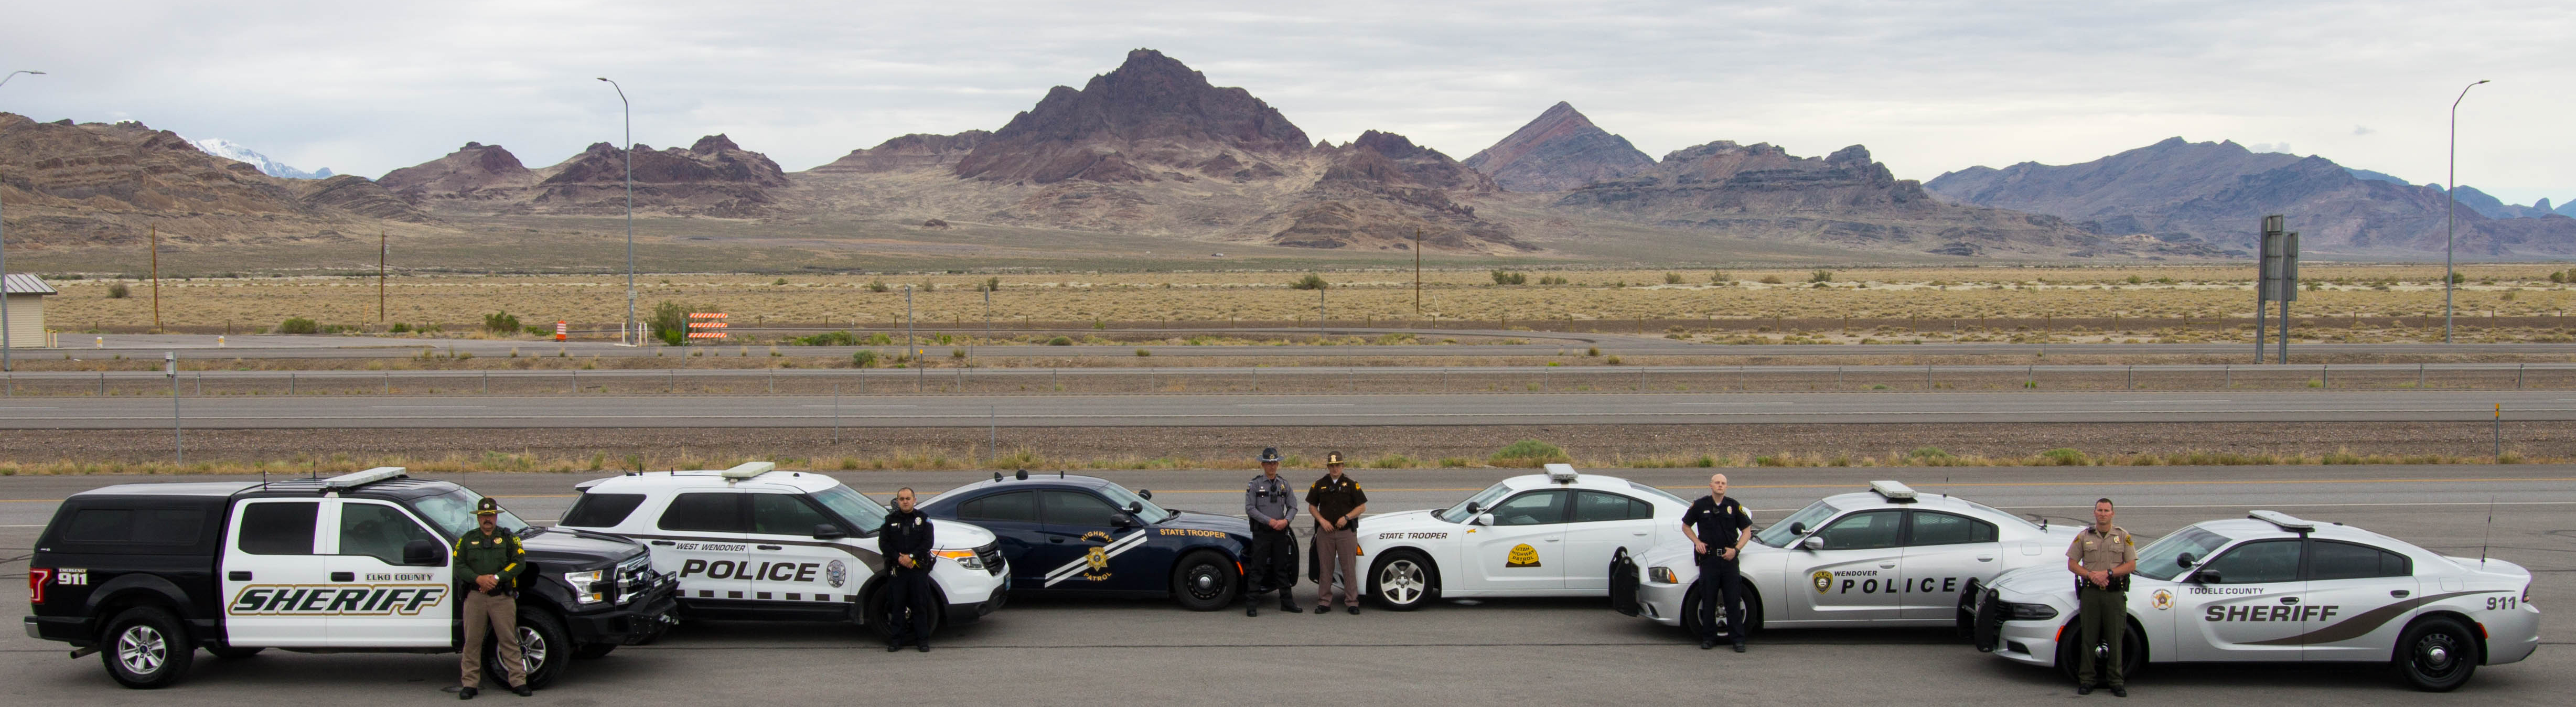 Officers from the Elko County Sheriff's Office, West Wendover Police Department, Nevada Highway Patrol, Utah Highway Patrol, Wendover Police Department and Tooele County Sheriff's Office will be participating in the Border to Border seat belt enforcement operation.